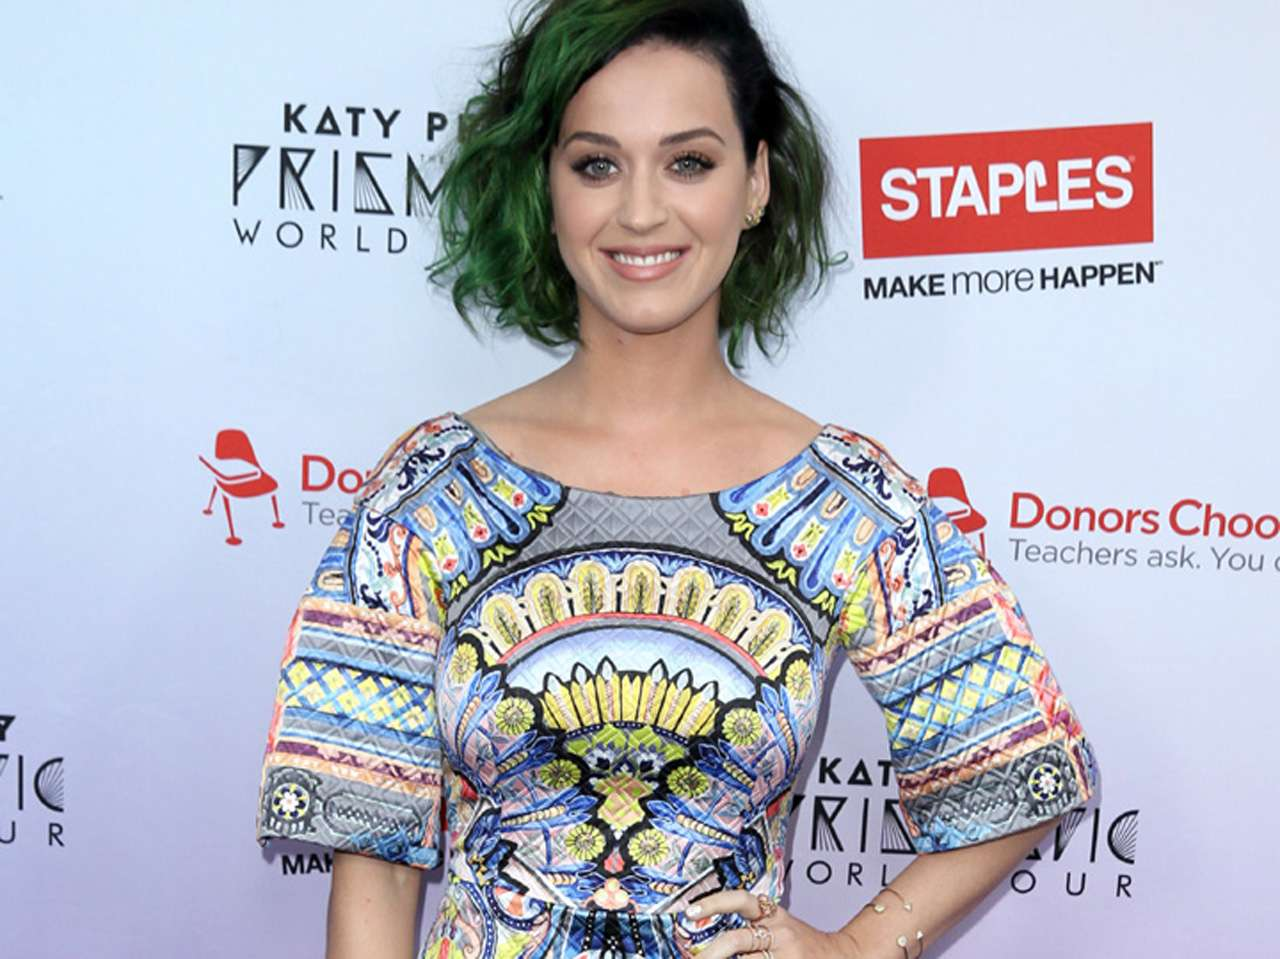 Katy Perry Foto: AP